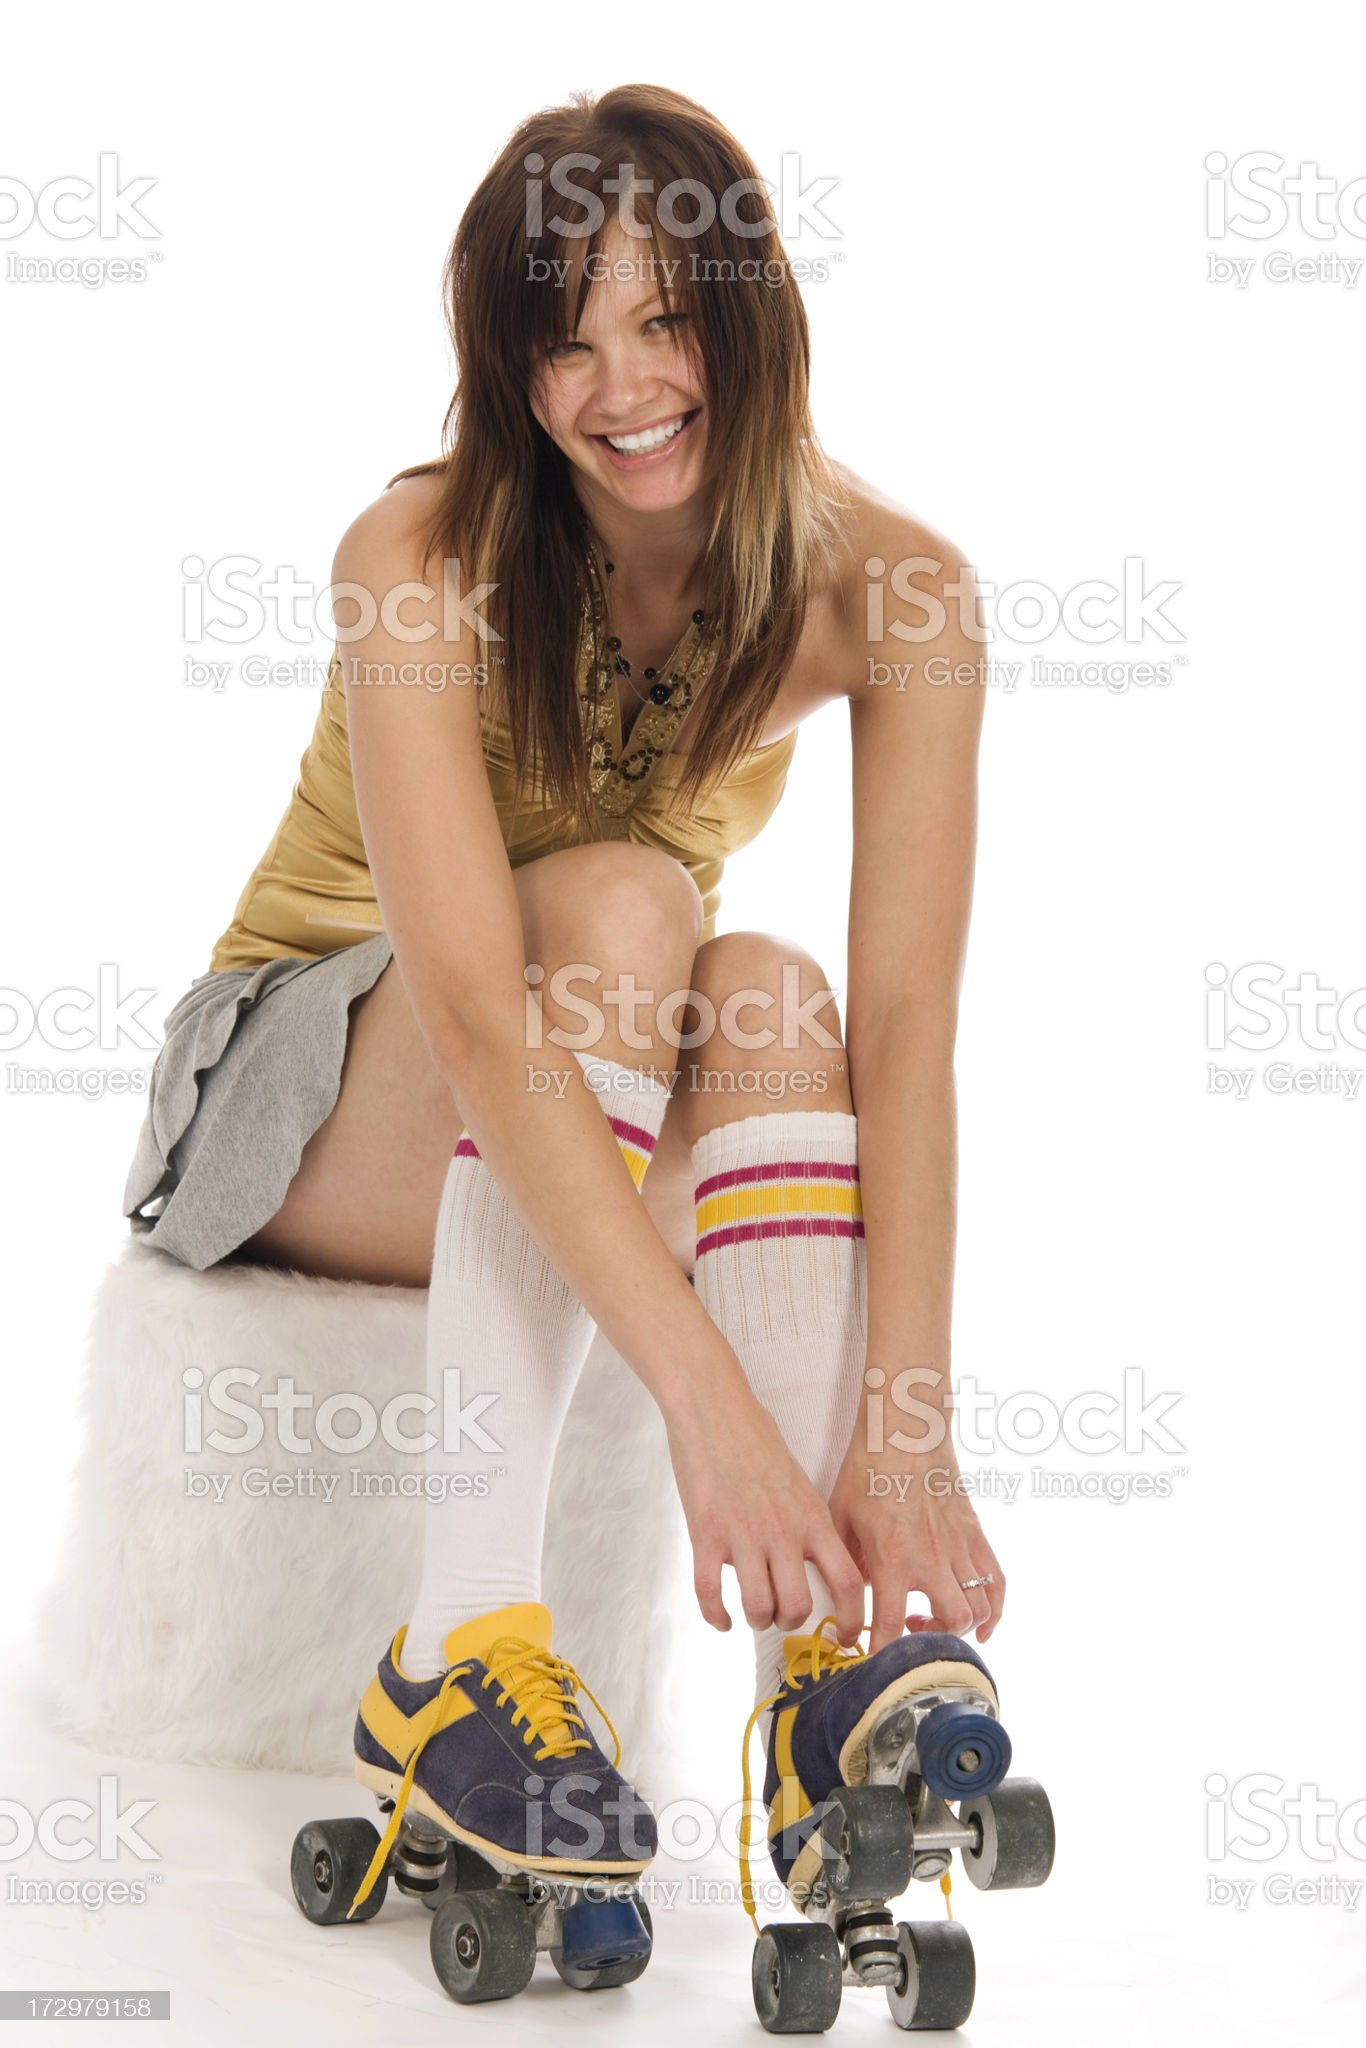 Girl With Roller Skates royalty-free stock photo